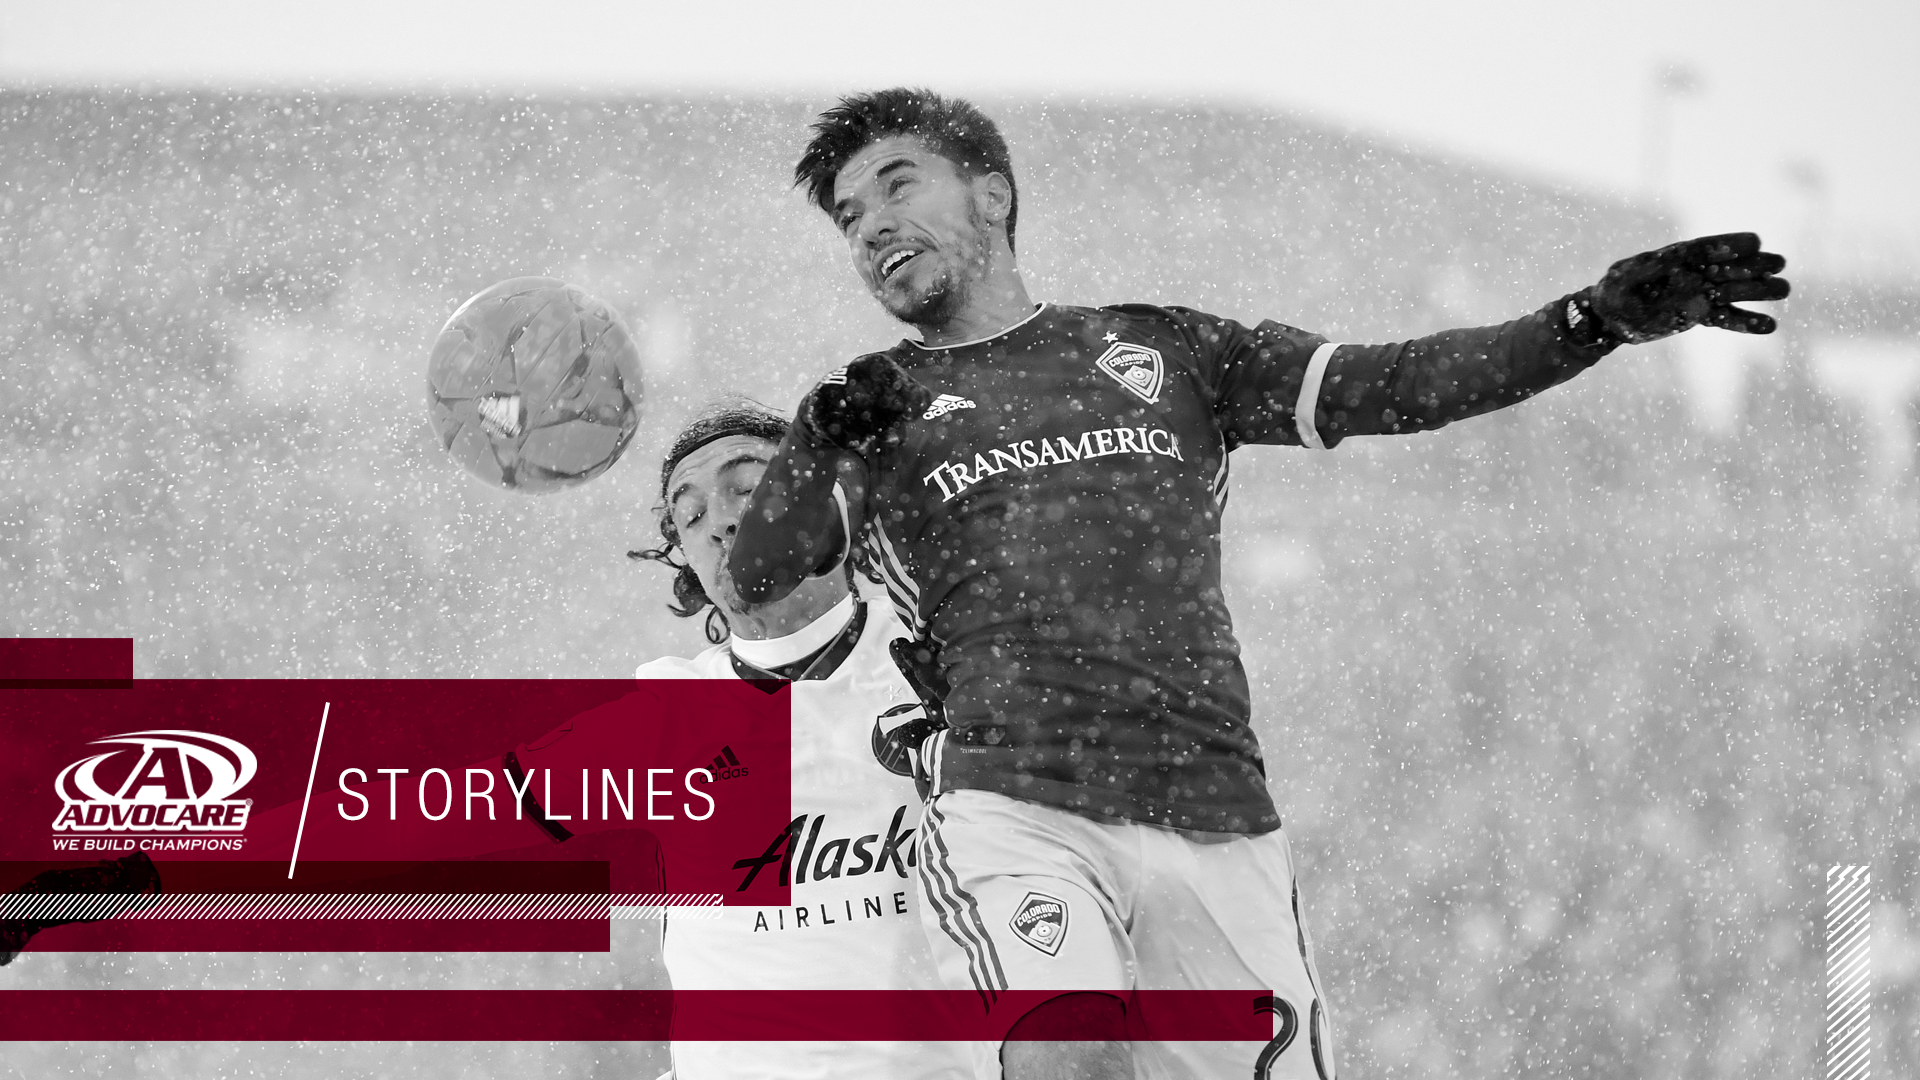 Portland Timbers vs Colorado Rapids AdvoCare Storylines July 1920x1080